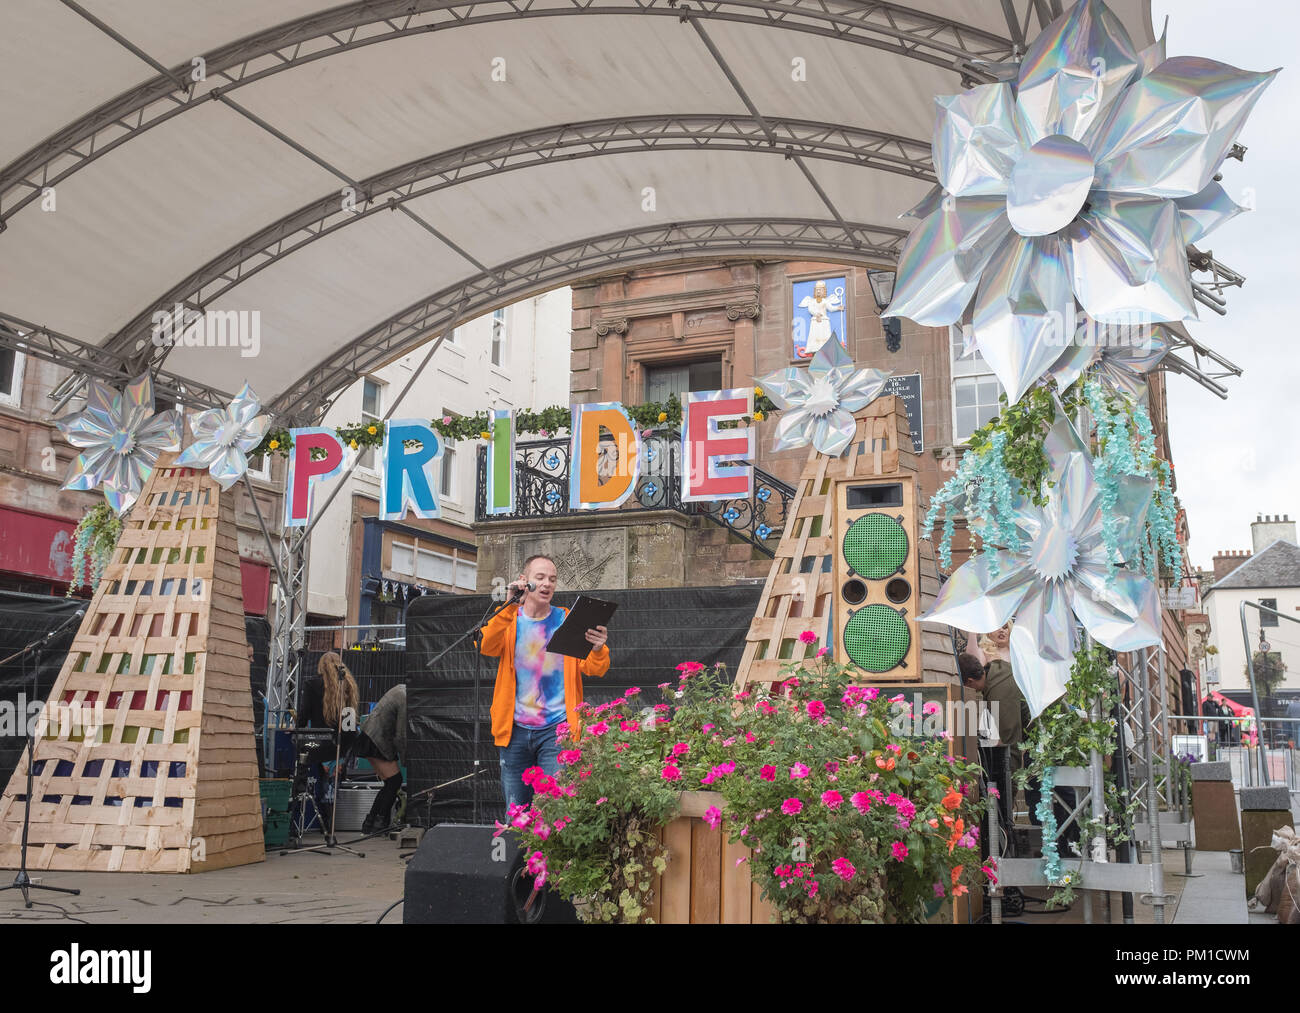 Opening remarks at a Pride event held in Dumfries town centre on the 15th September 2018. Stock Photo